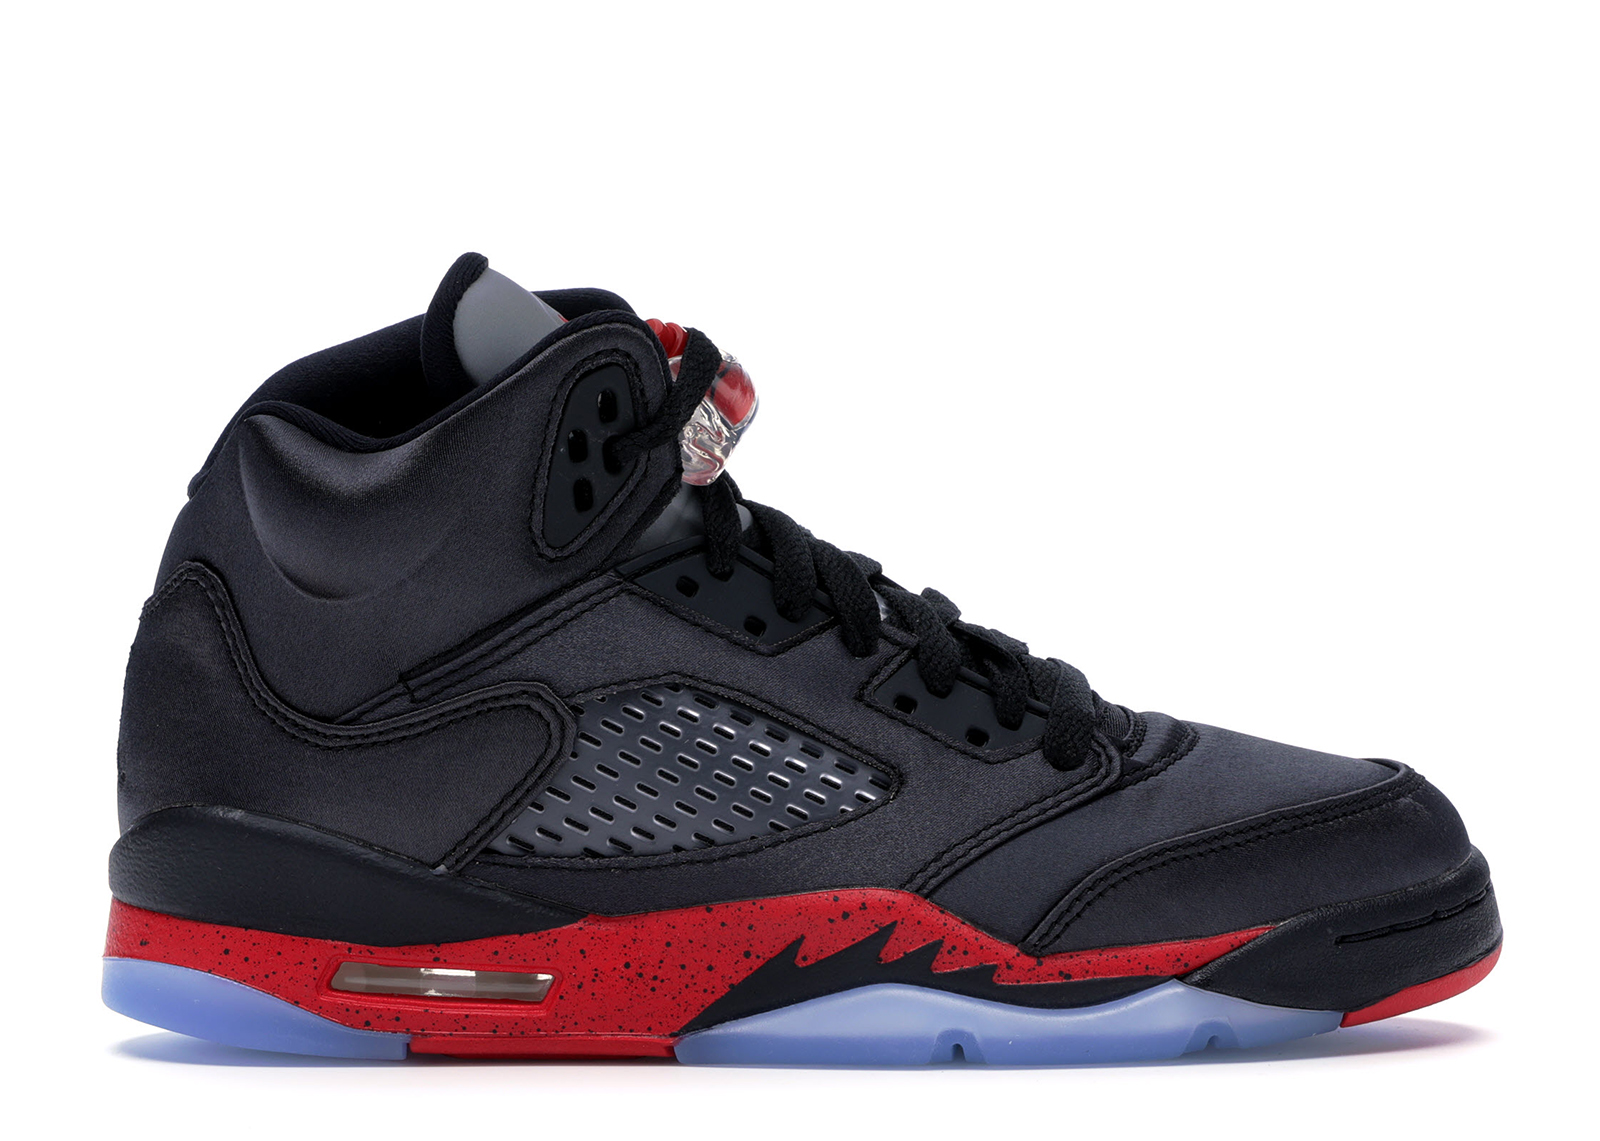 bred 5s release date